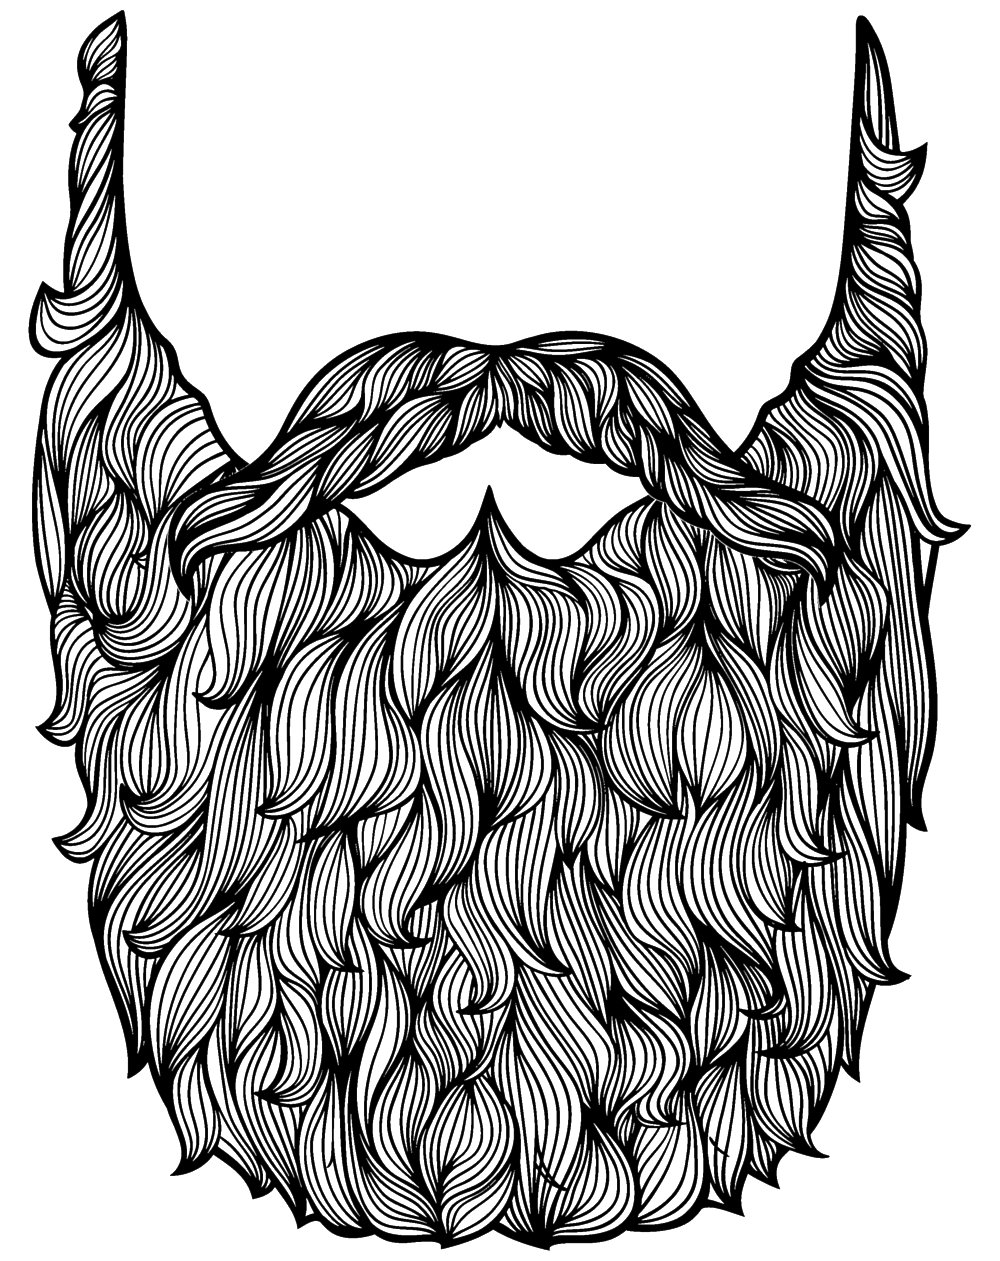 Drawn beard doodle Pencil Drawing Amazing Beard Images